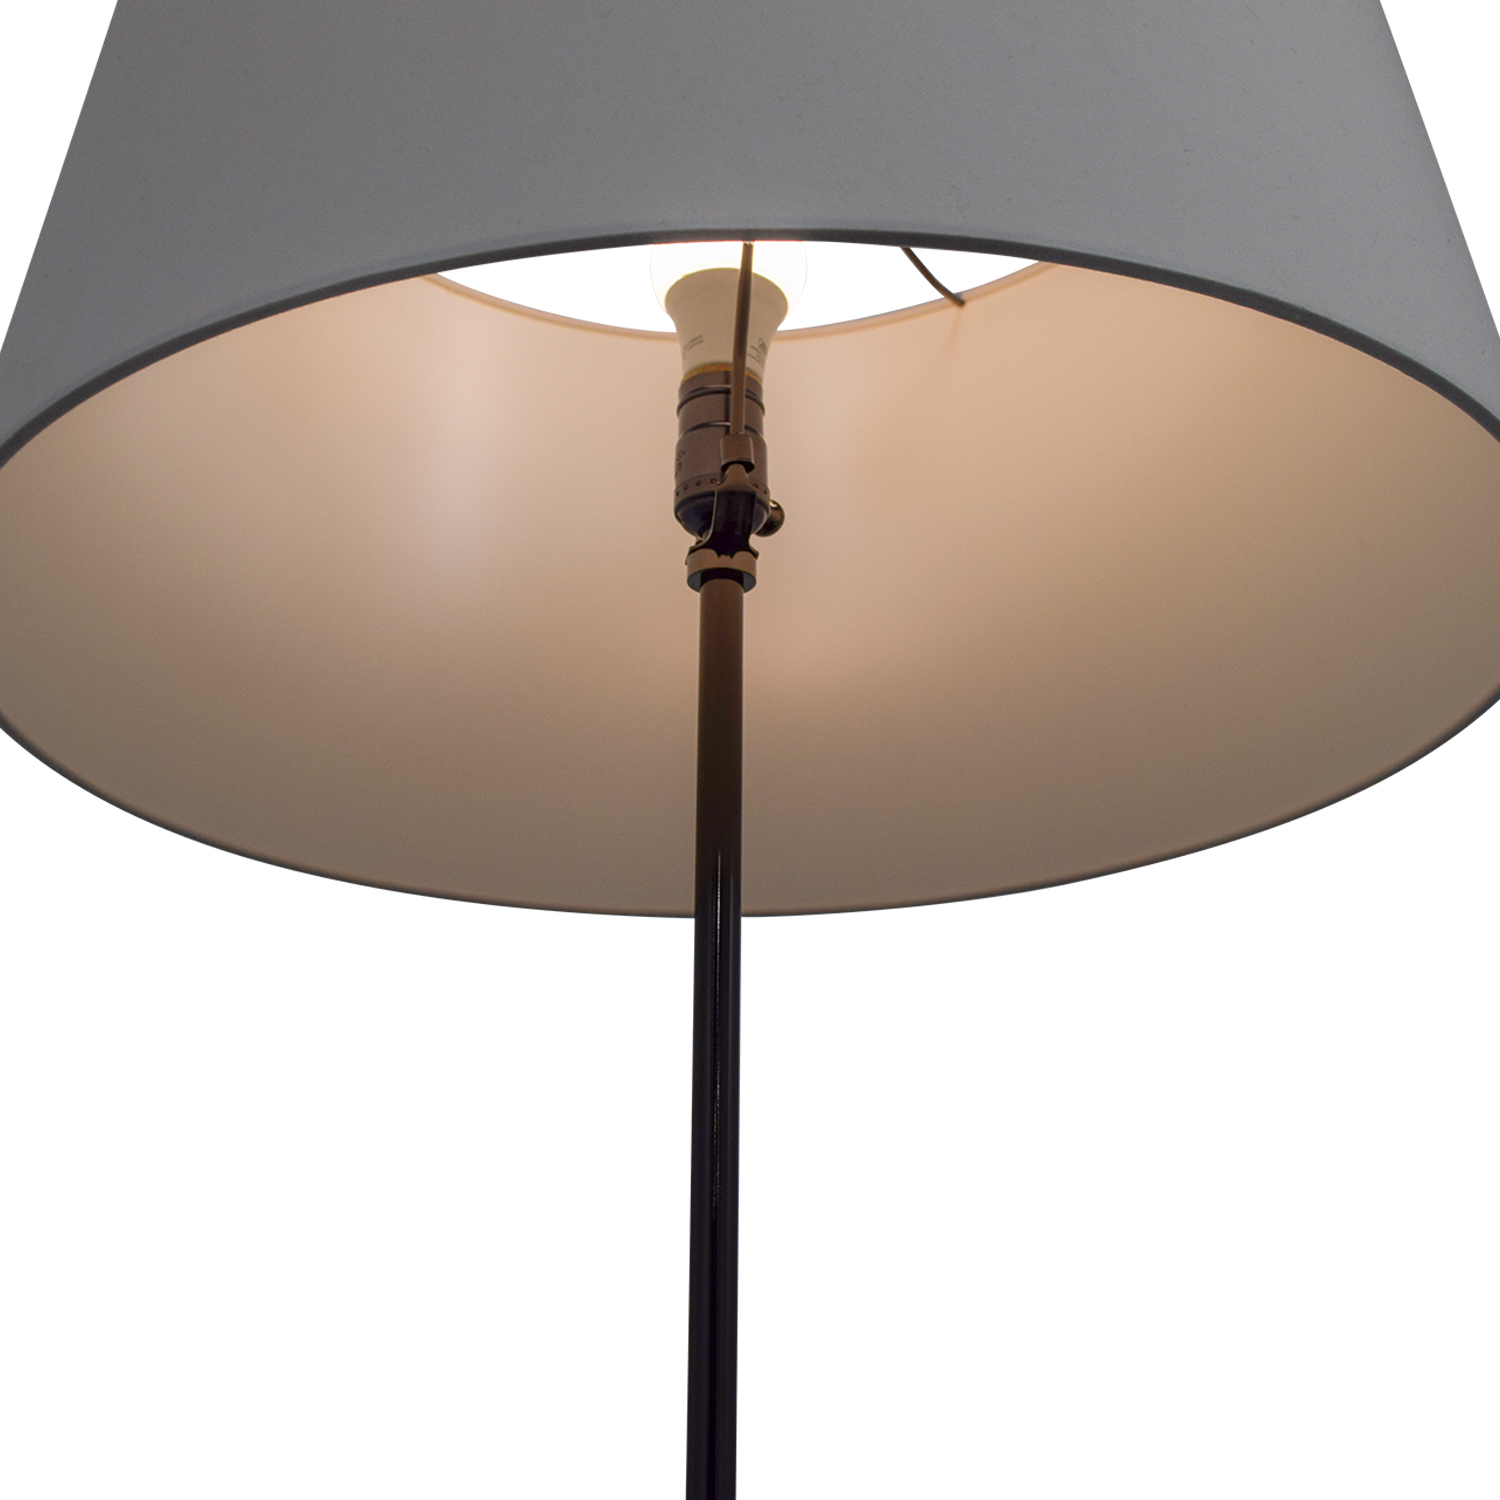 68 off west elm west elm floor lamp with table attached decor west elm west elm floor lamp with table attached second hand aloadofball Image collections